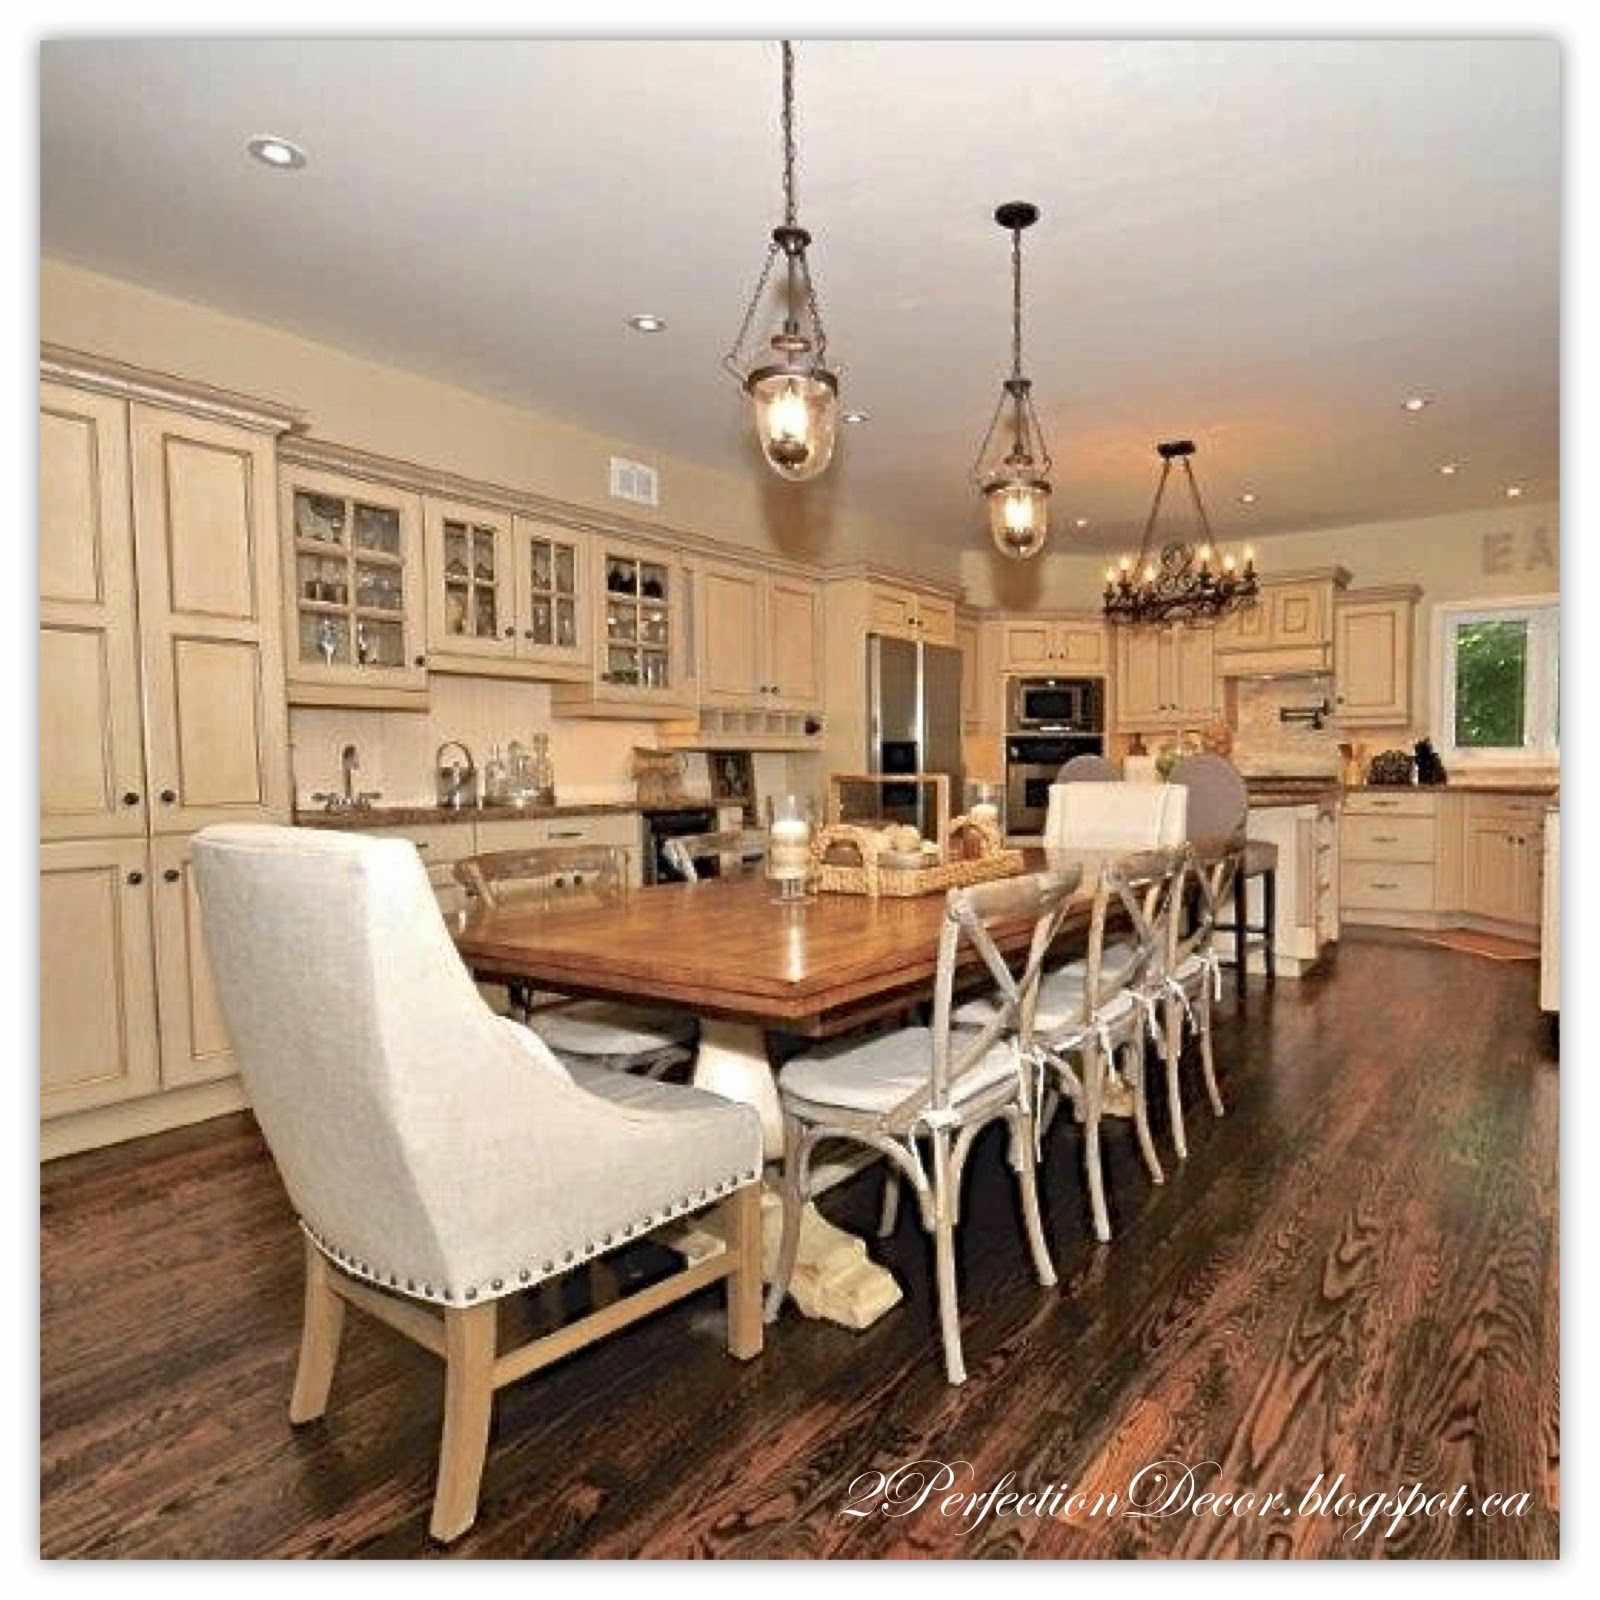 French Provincial Kitchen: 2Perfection Decor: French Country Kitchen Reveal